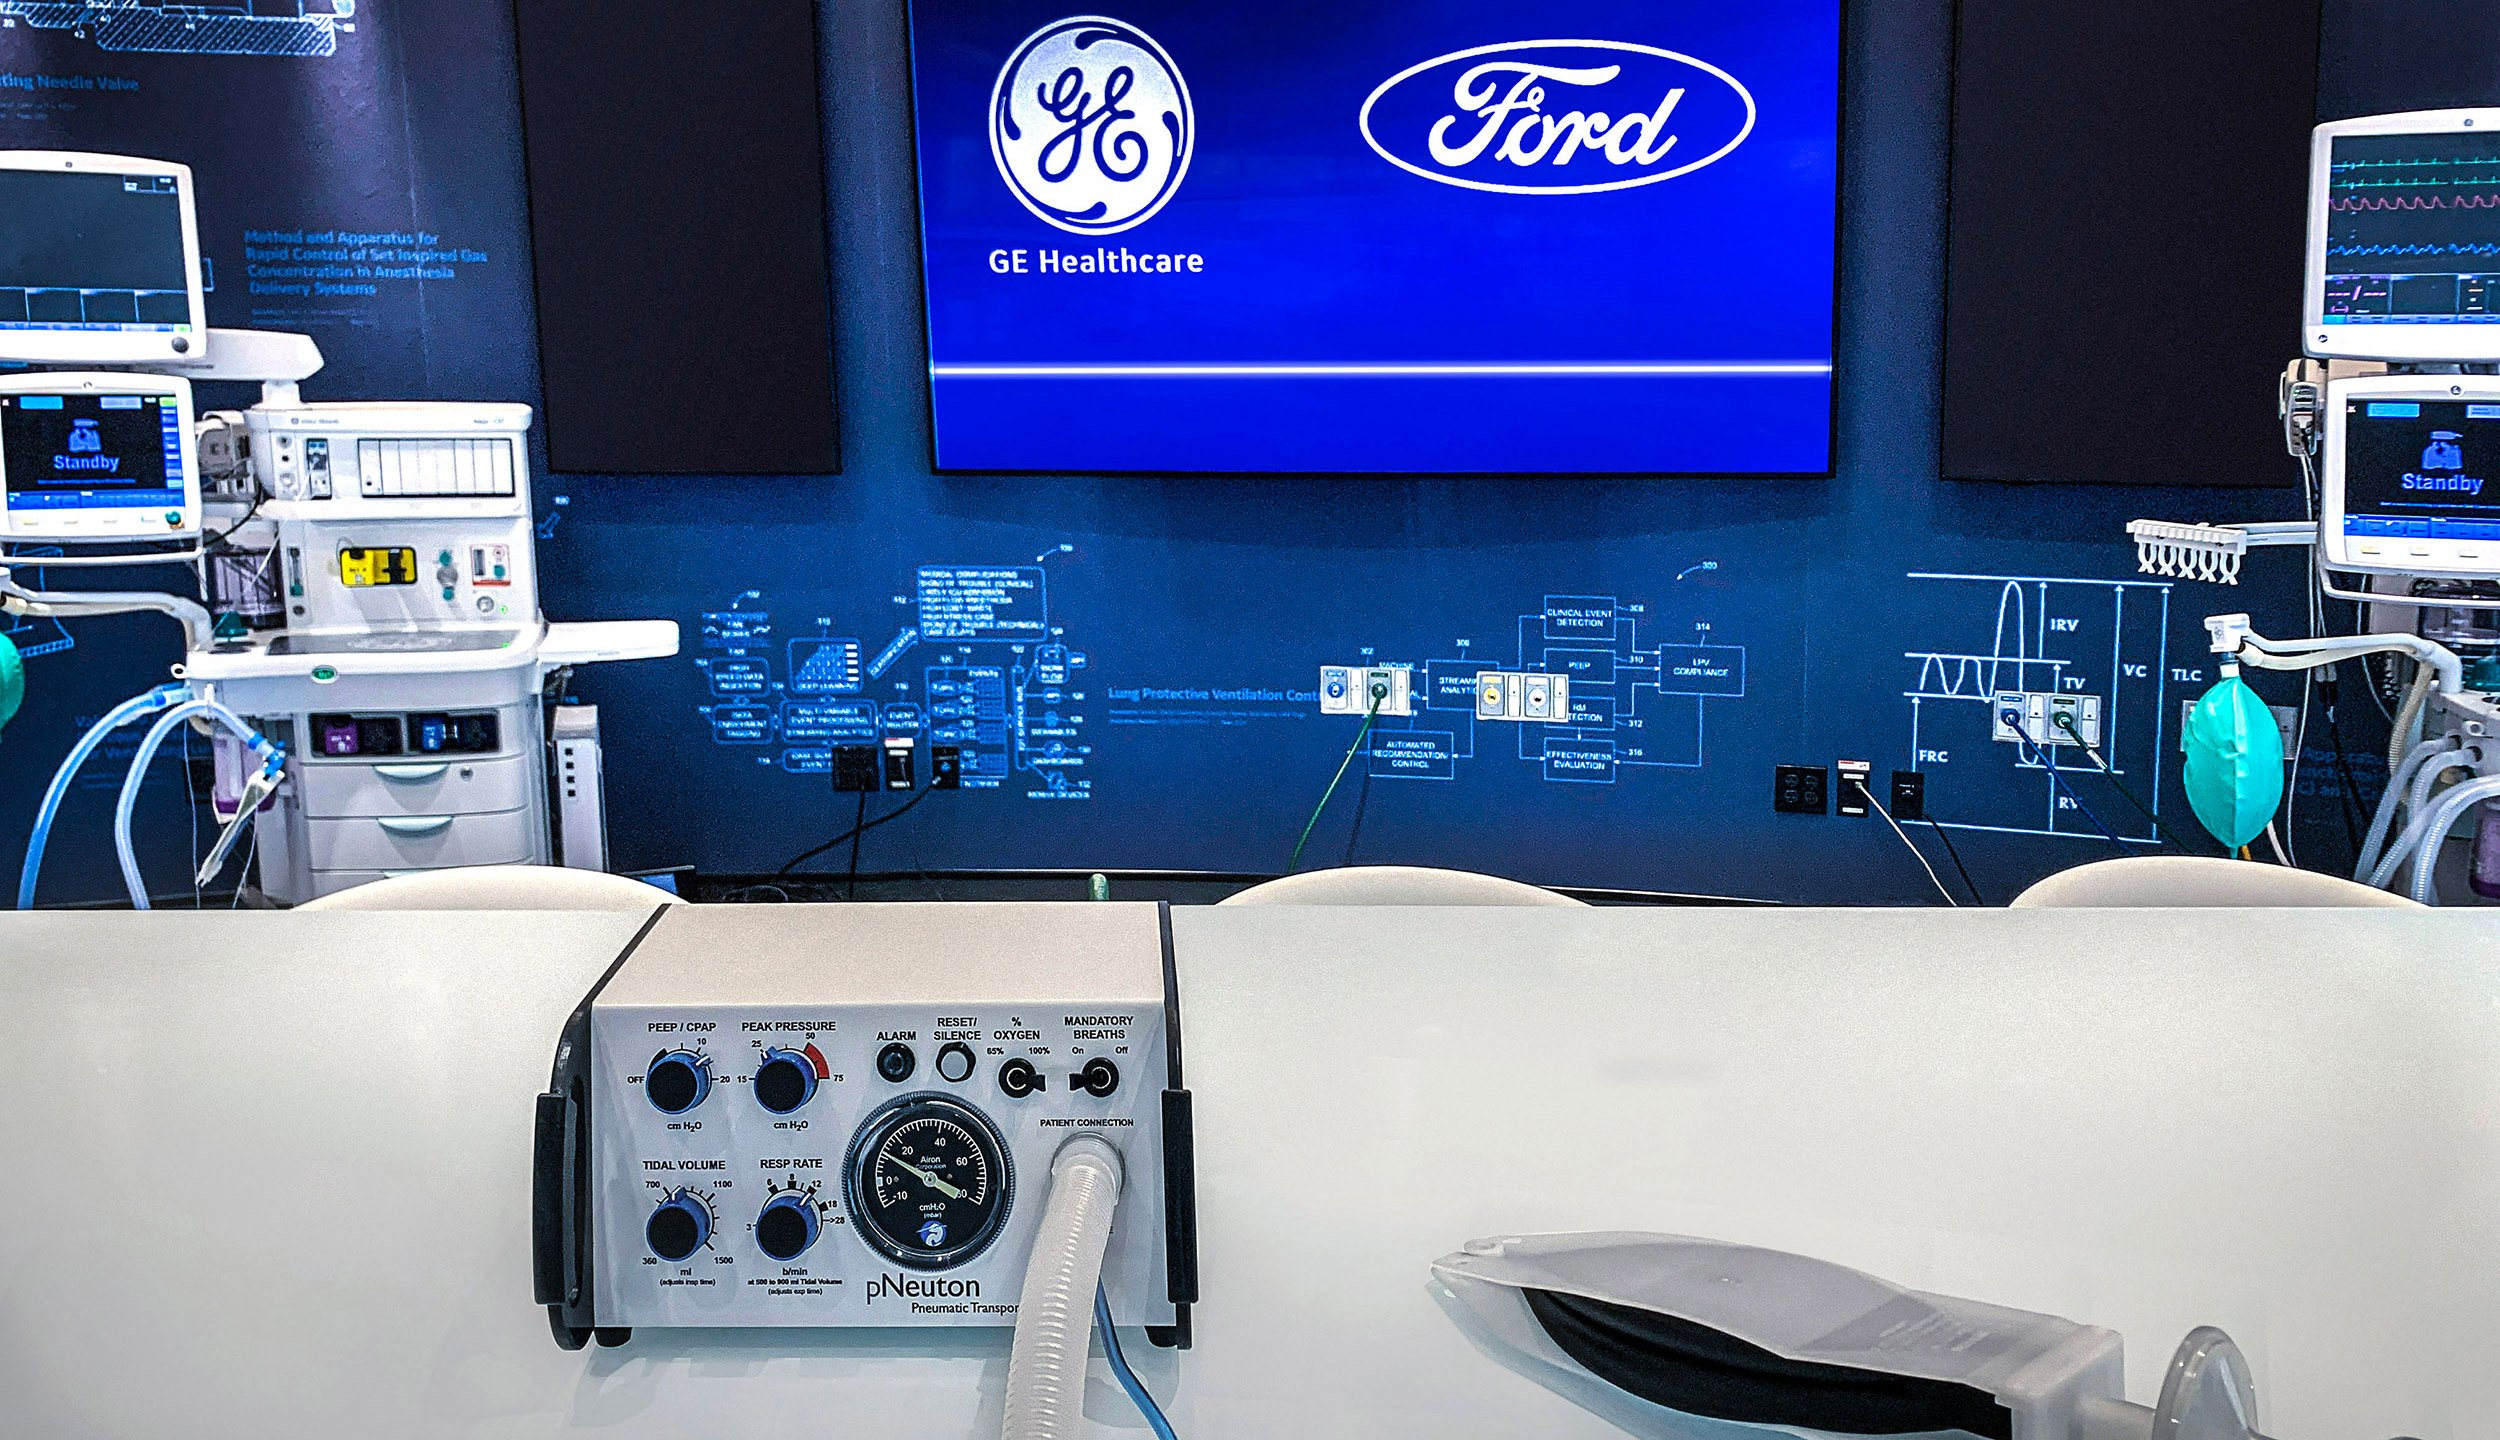 A Model A-E ventilator, left, and a simple test lung. The ventilator uses a design that operates on air pressure without the need for electricity, addressing the needs of most COVID-19 patients. Its production can be quickly scaled to help meet growing demand in the U.S. (Ford Motor Company)